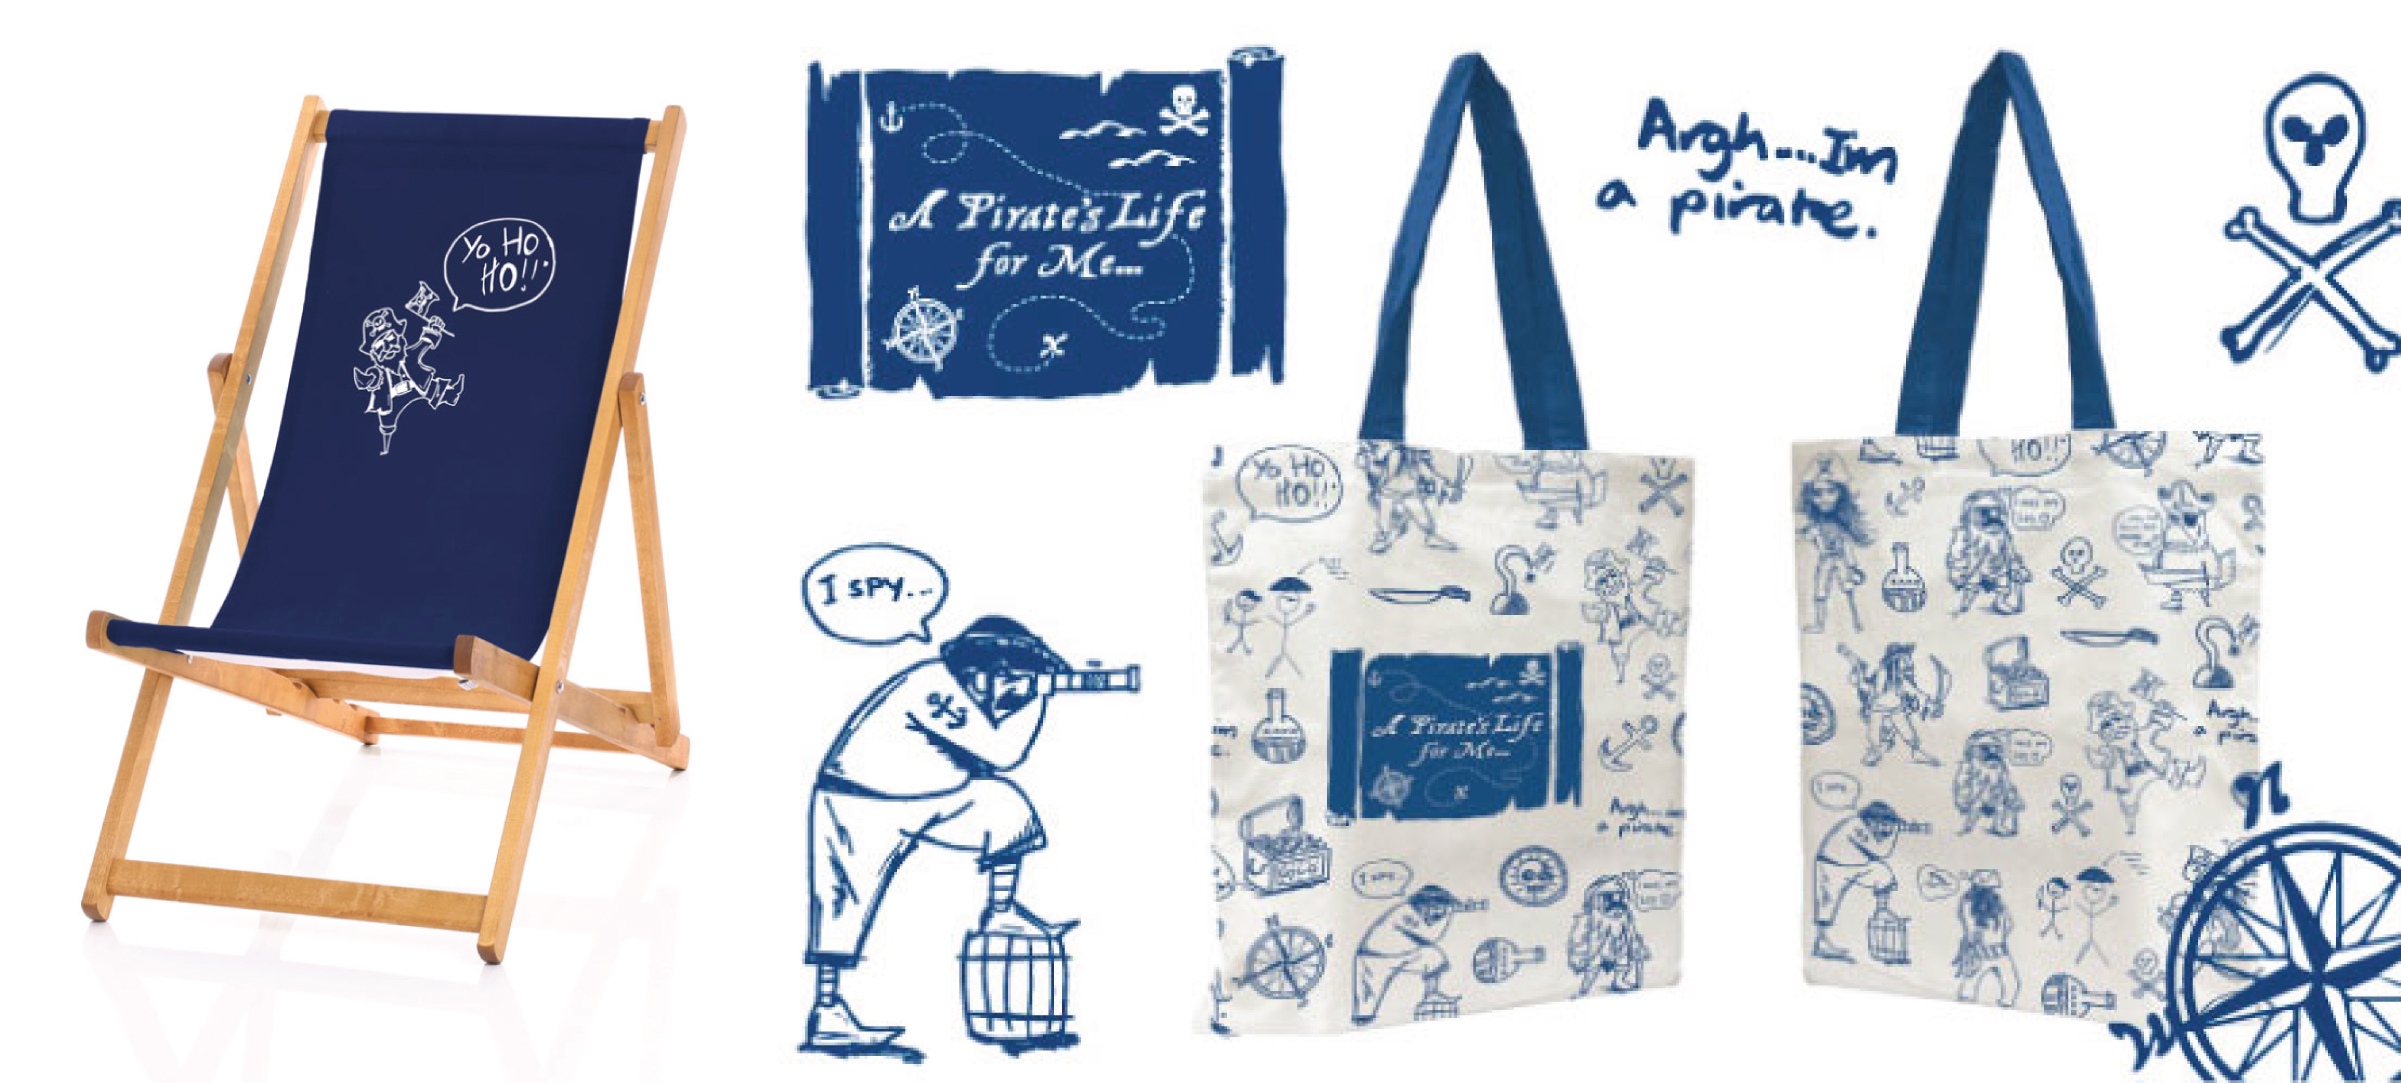 Pirate Deckchairs Bags Offer